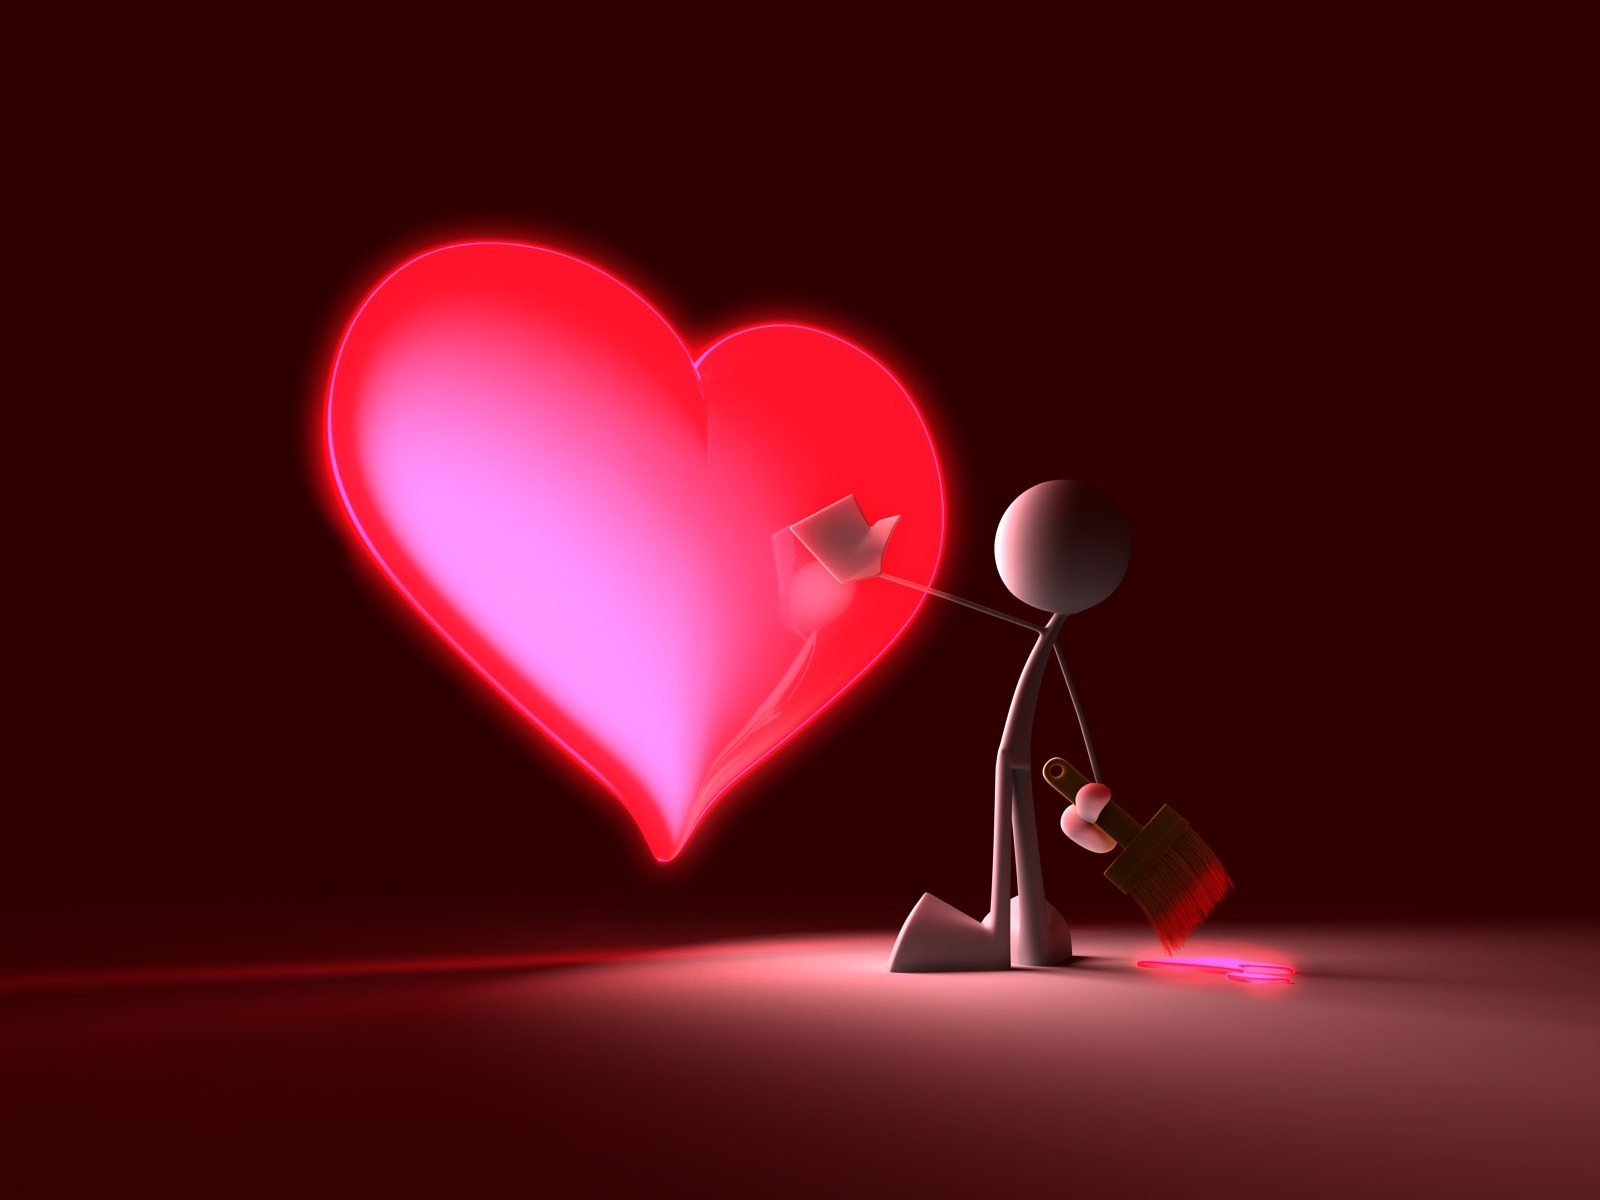 Best sad wallpapers 2011 - Sad heart wallpapers love ...